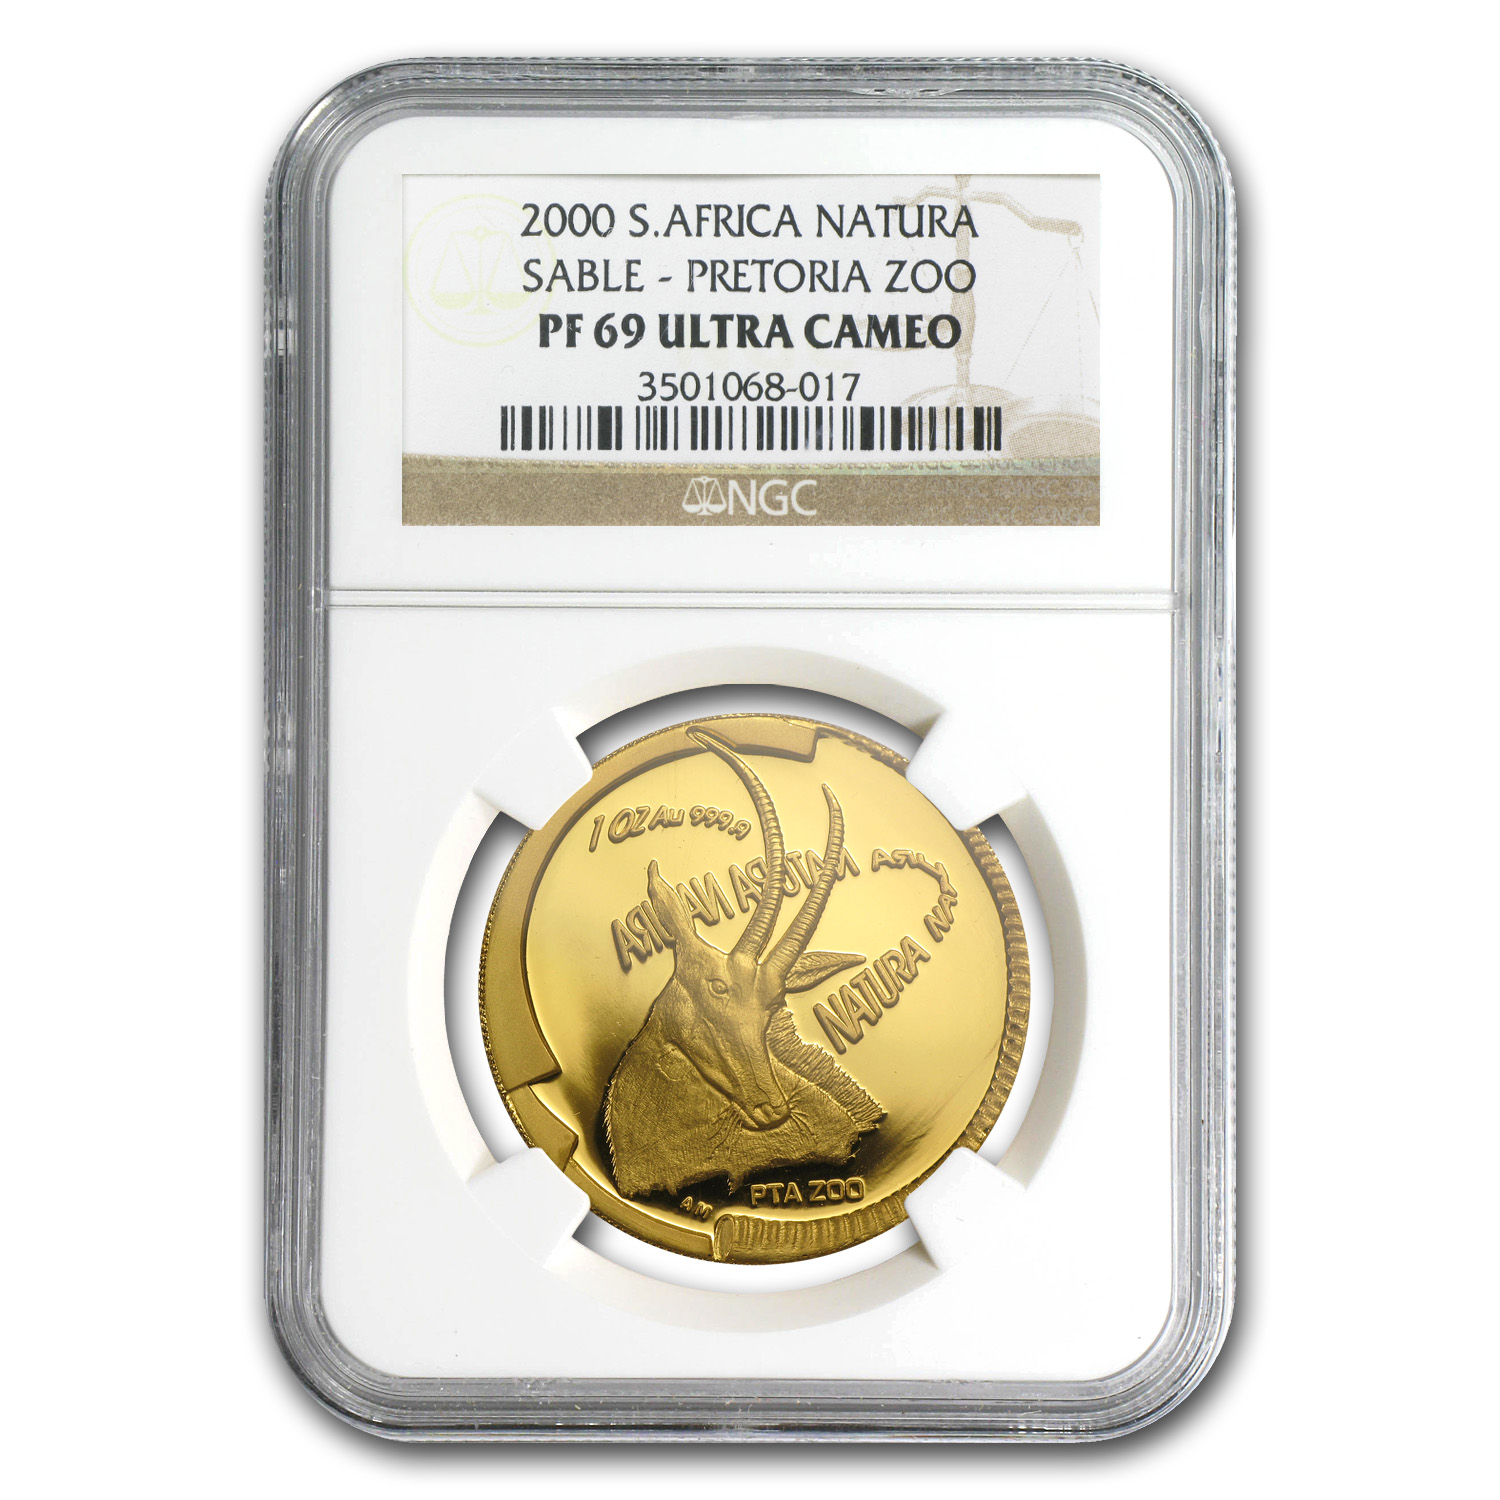 2000 1 oz Gold South African Natura 100 Rand Sable PF-69 NGC